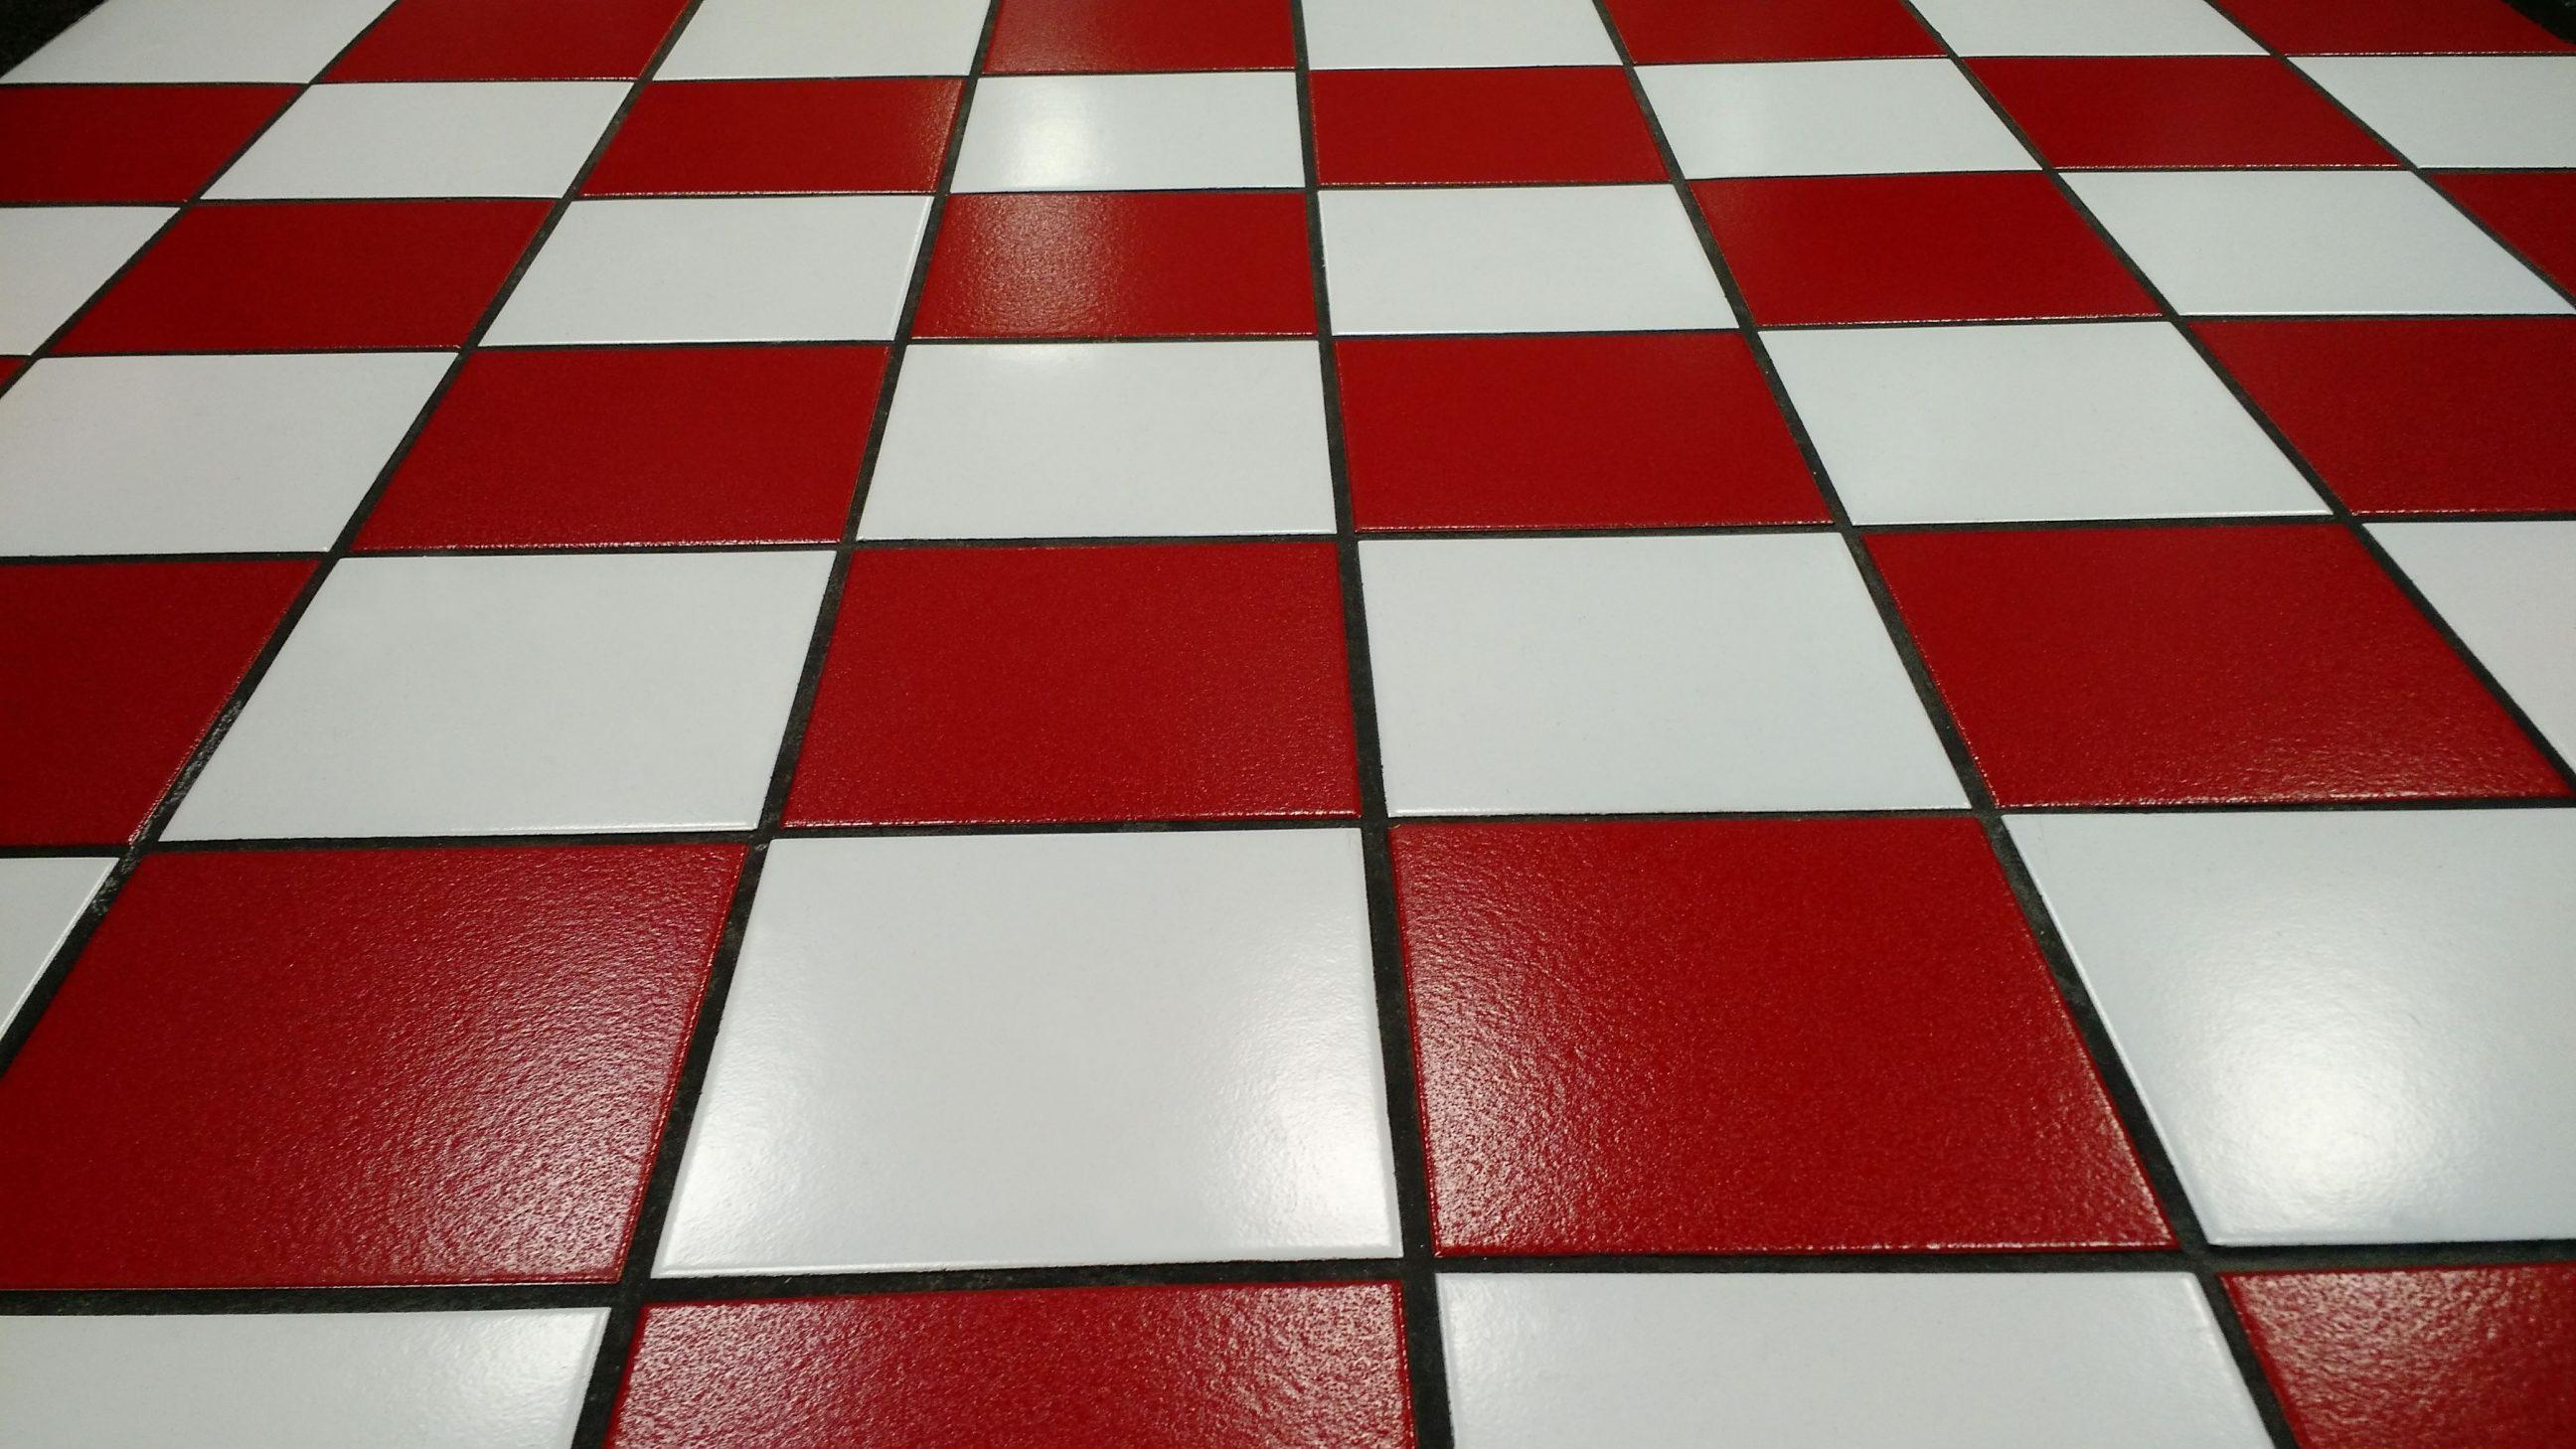 Red and White Tiled Floor